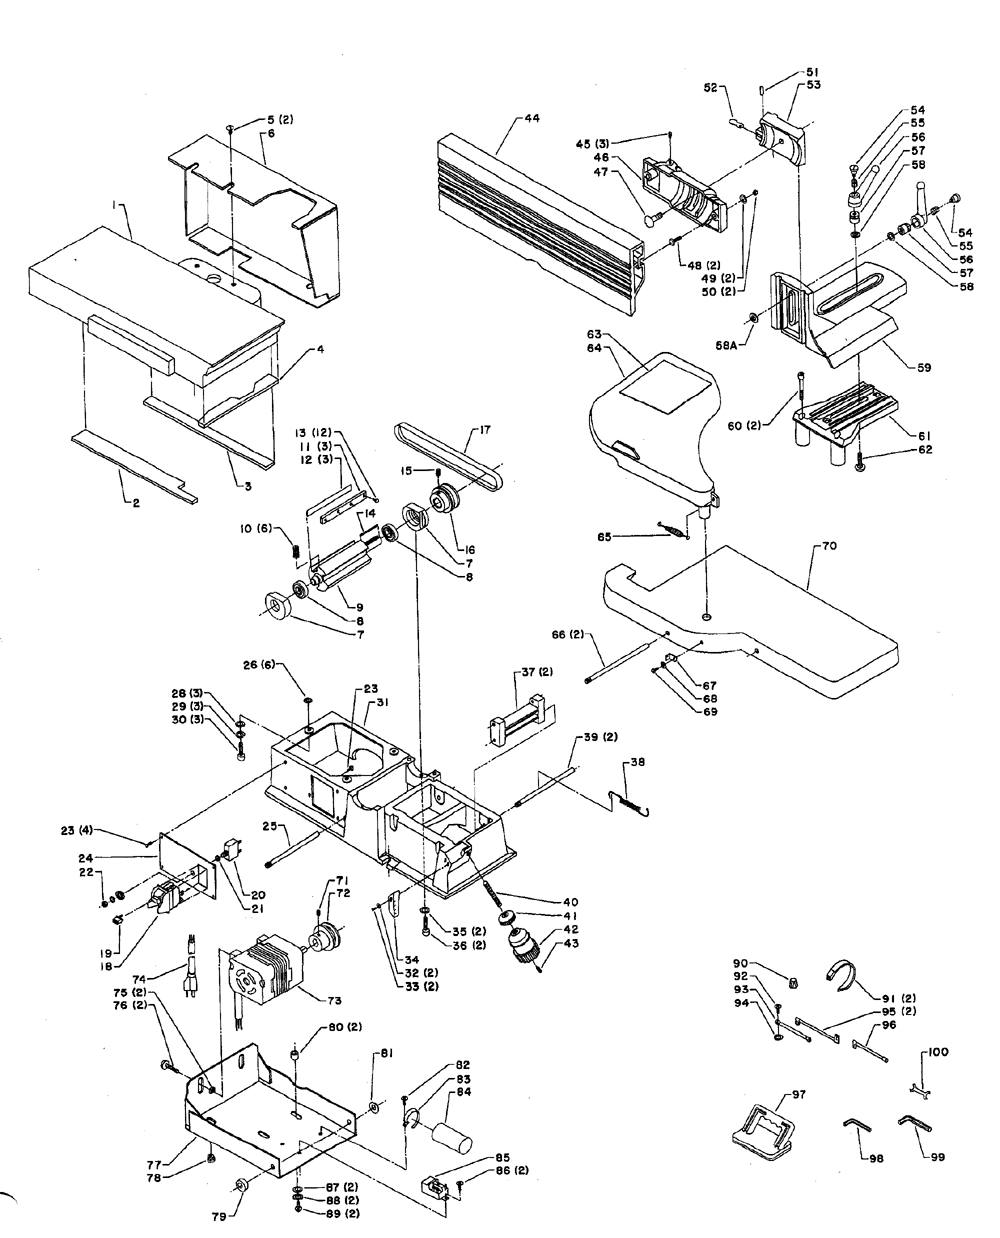 buy delta 37-280 replacement tool parts | delta 37-280 ... 1966 oldsmobile delta 88 wiring diagram delta tools wiring diagram